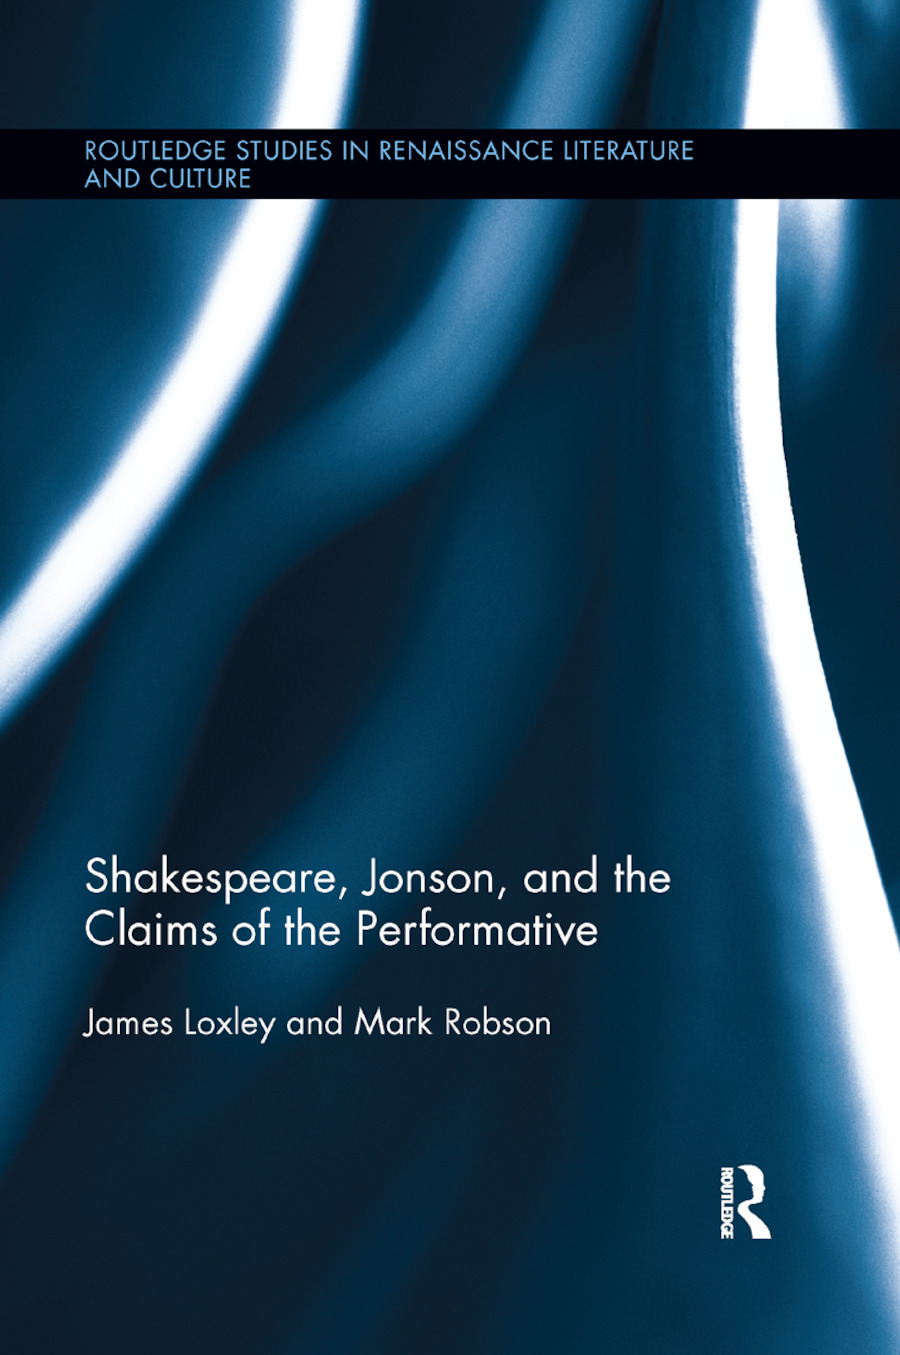 Shakespeare, Jonson, and the Claims of the Performative: 1st Edition (Paperback) book cover